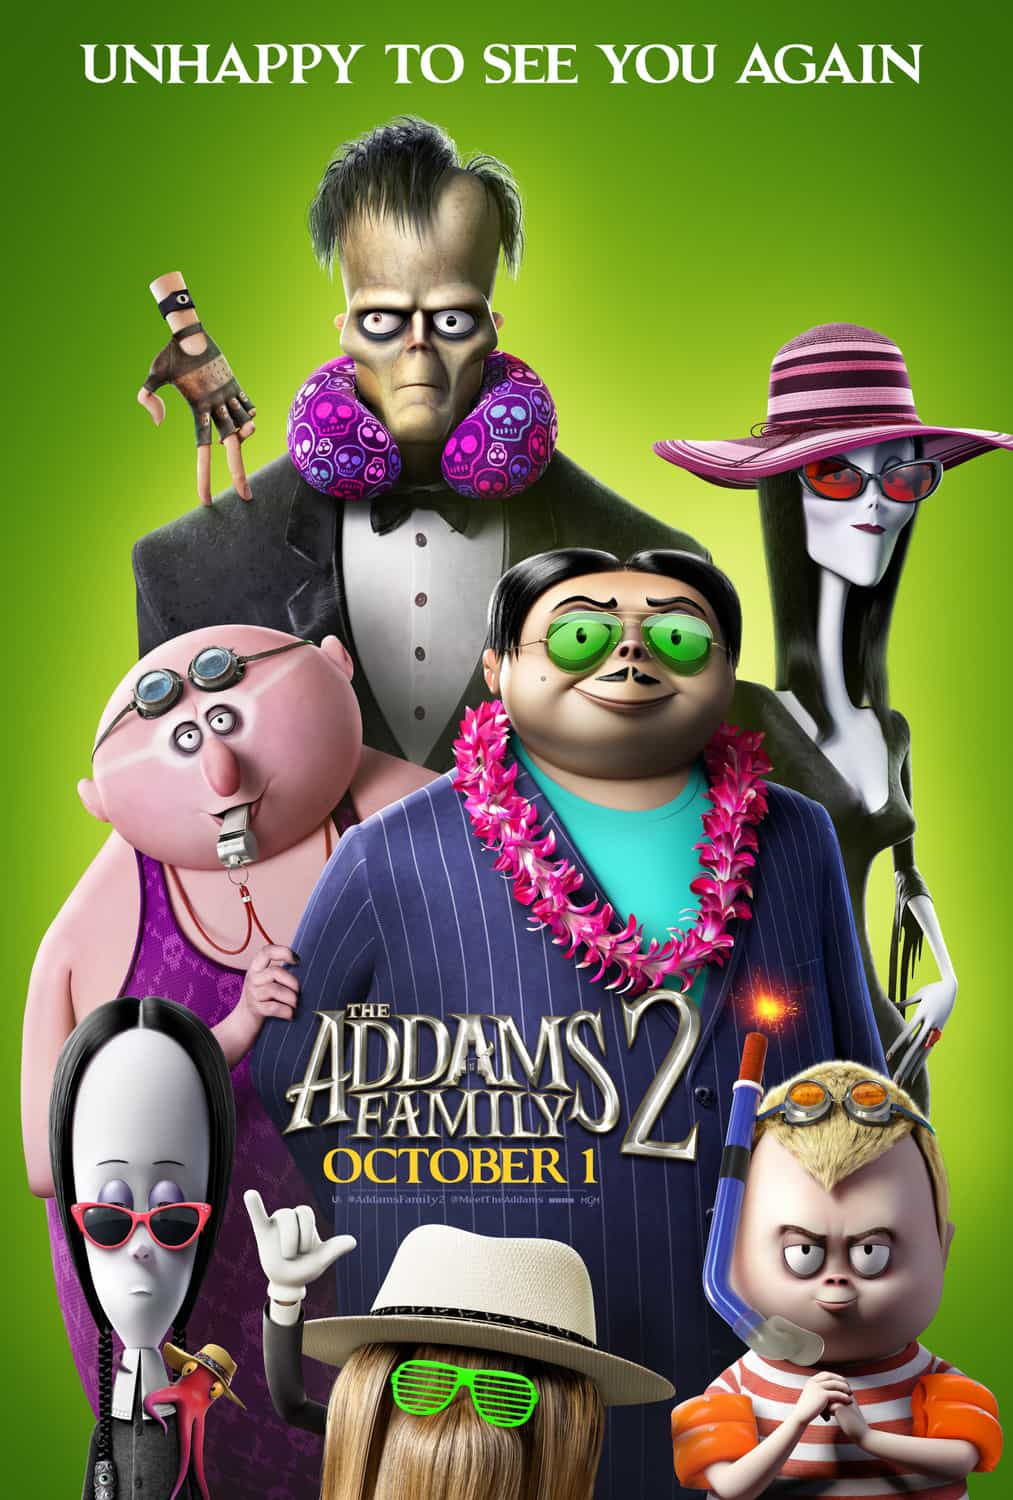 New movie preview UK weekend Friday 8th October 2021 - The Addams Family 2 and Pokemon the Movie: Secrets of the Jungle